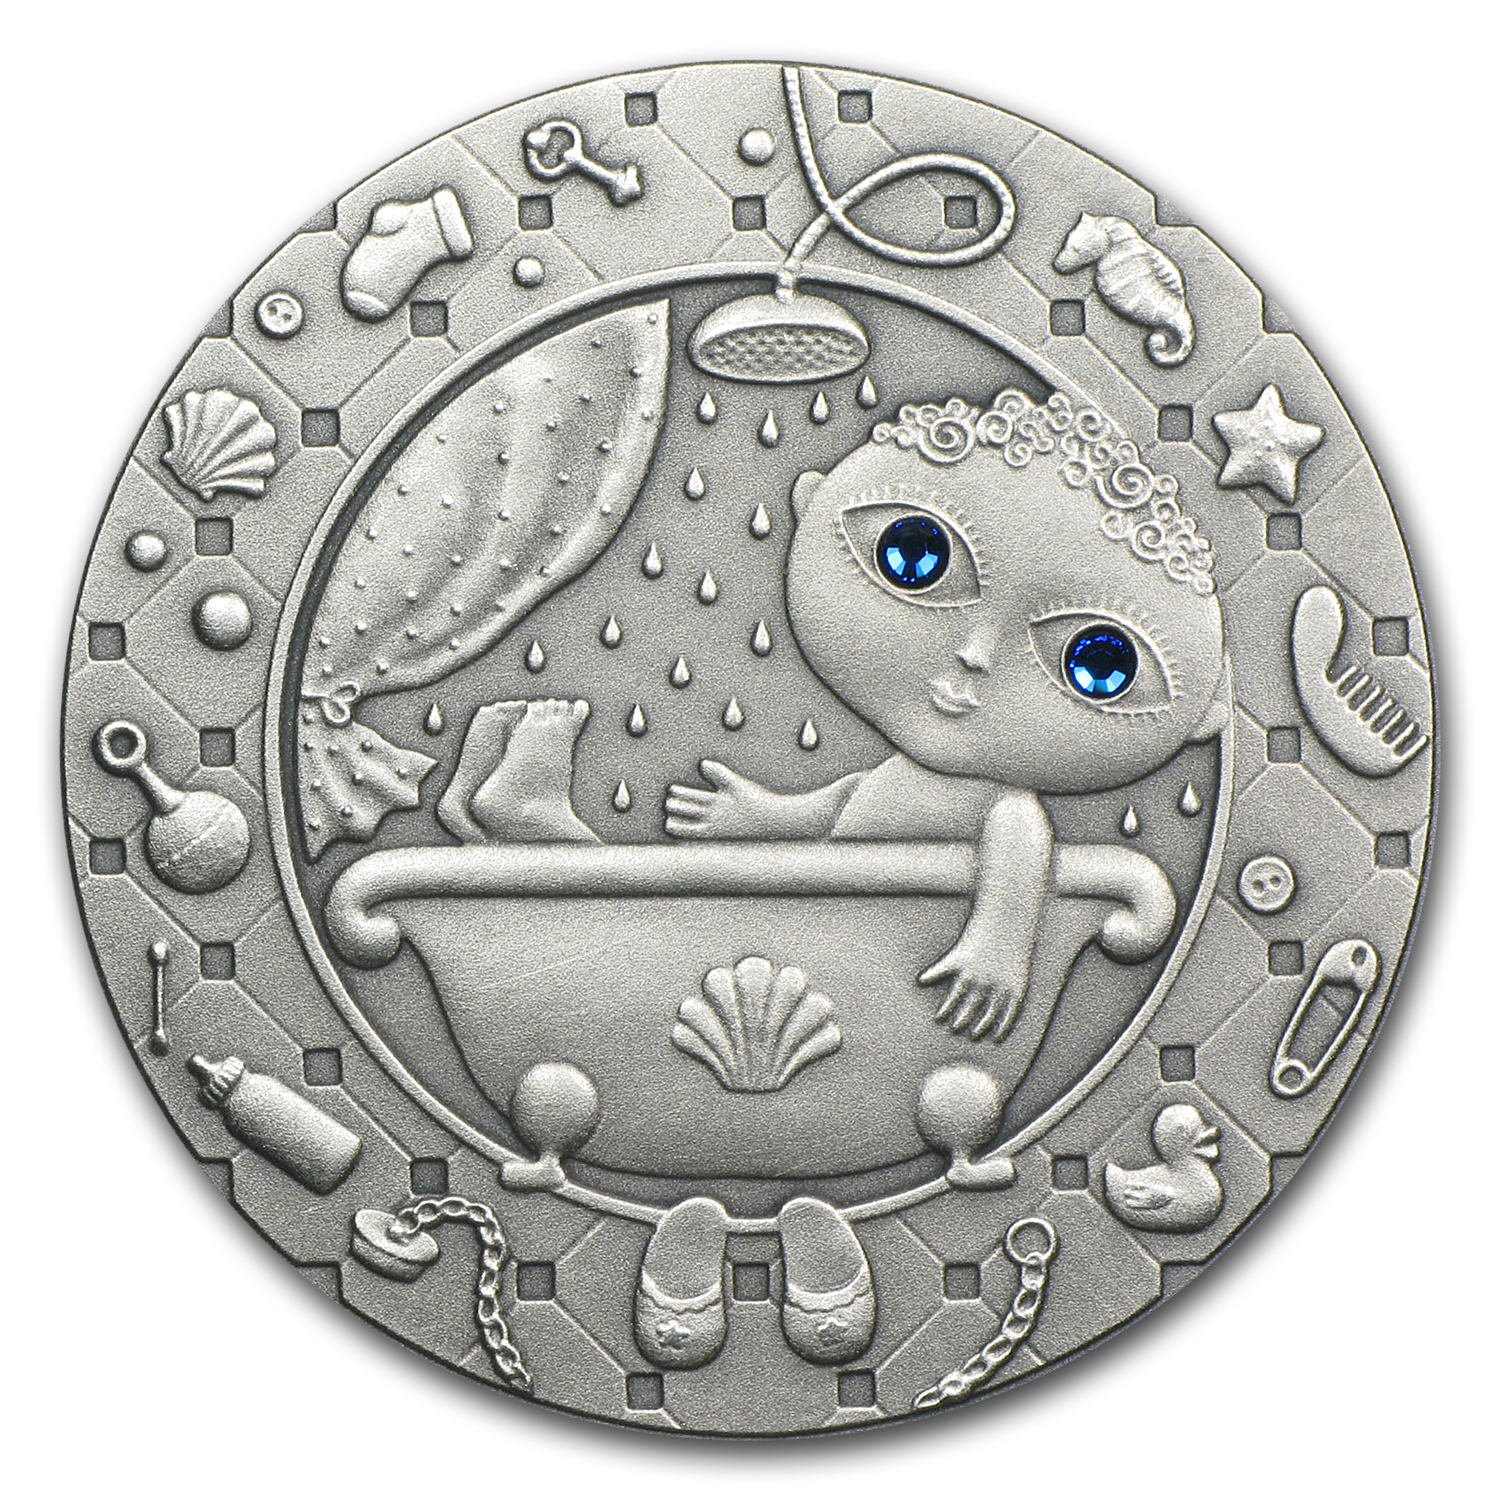 Belarus 2009 Oxidized Silver 20 Rubles Zodiac Signs - Aquarius